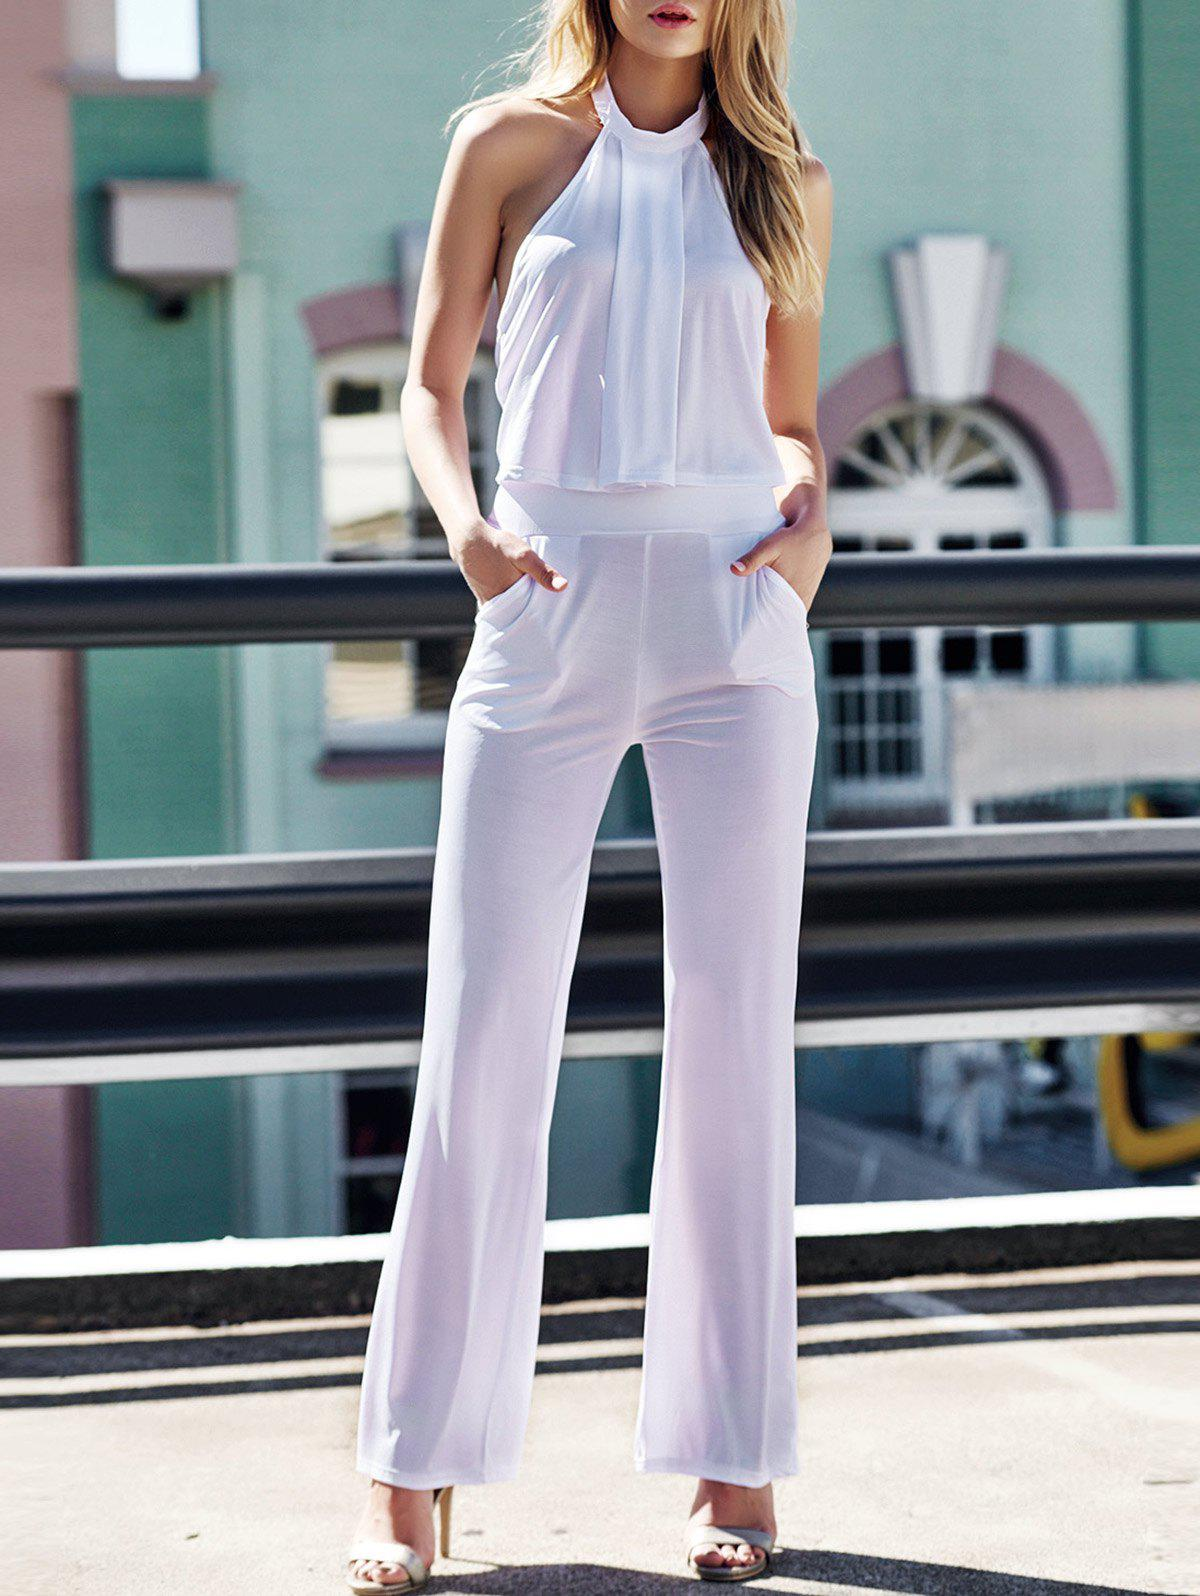 Stylish Halter Solid Color Crop Top + High-Waisted Pants Women's Twinset - WHITE L